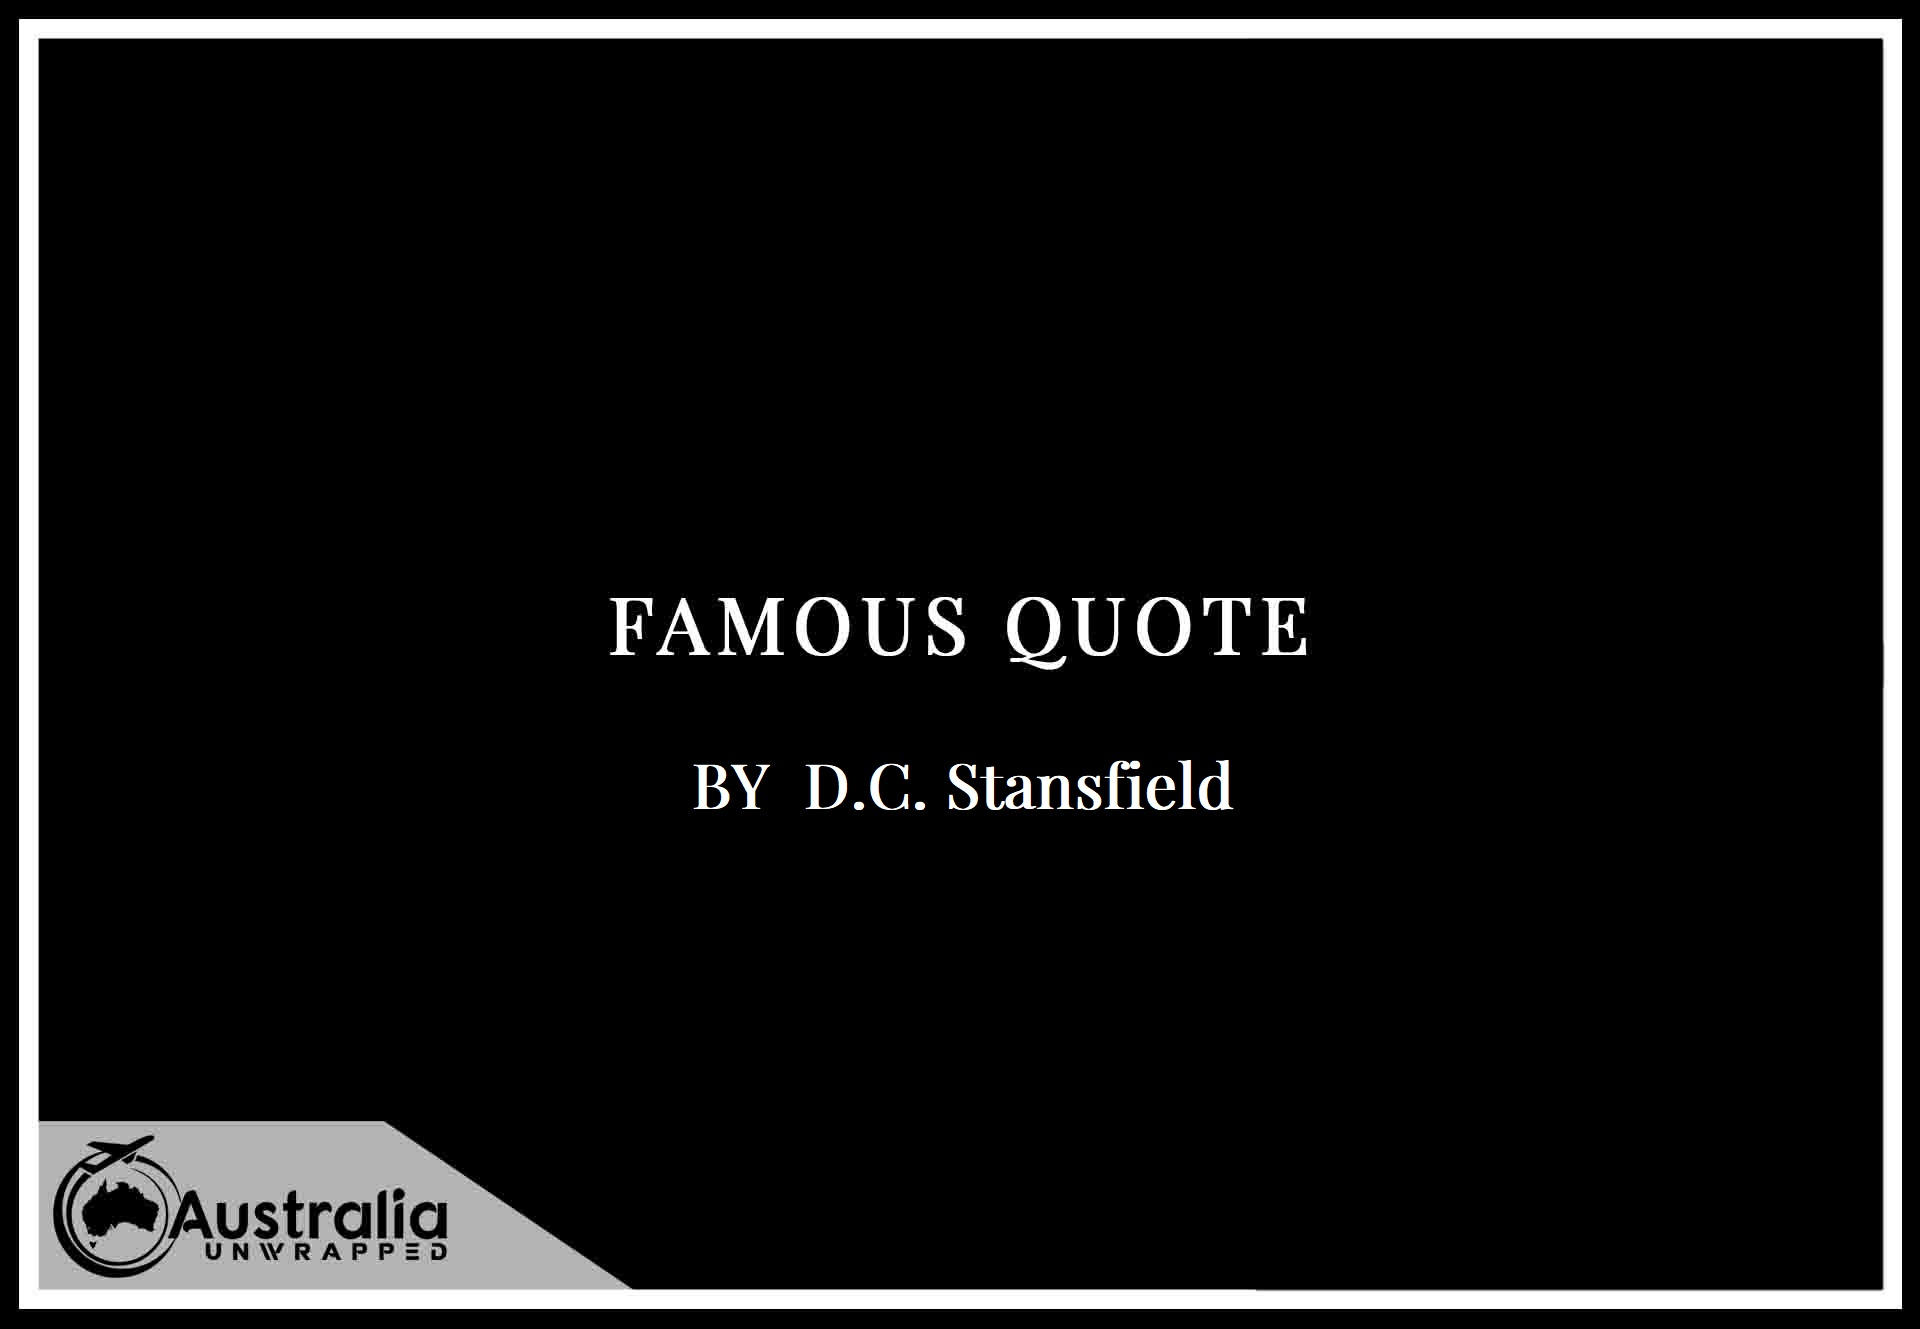 Top 1 Famous Quotes by Author D.C. Stansfield